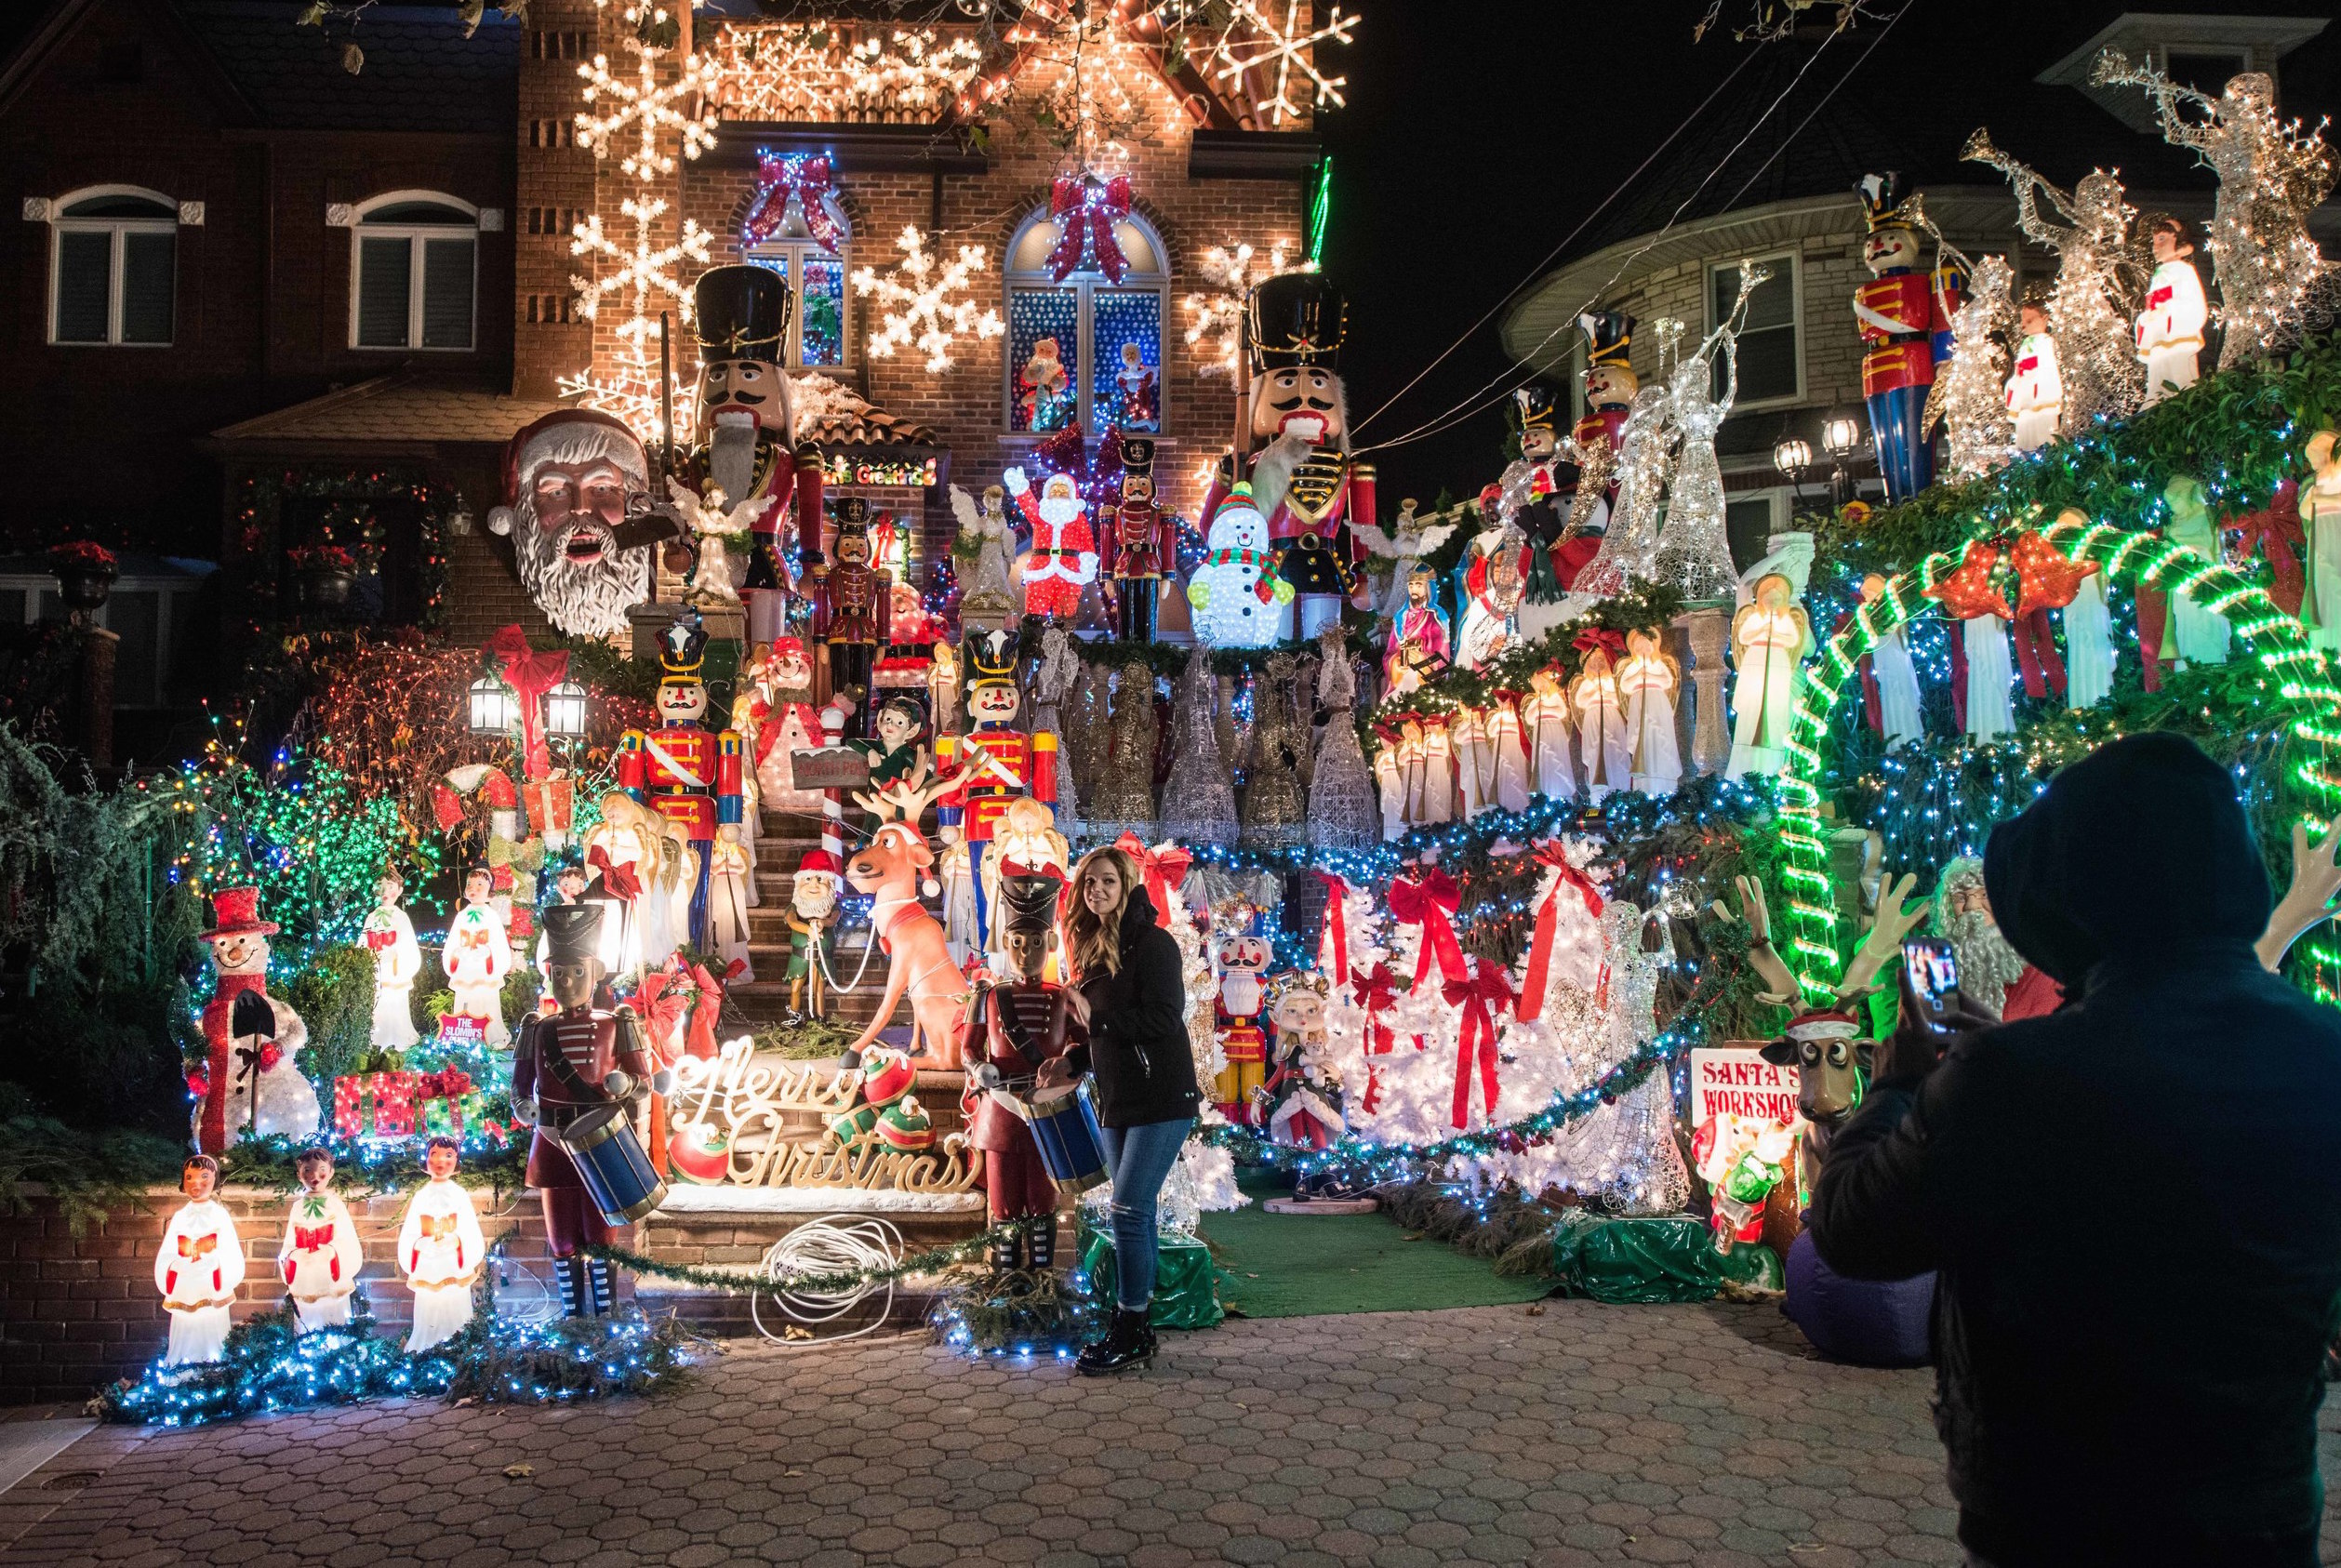 Dyker heights christmas lights 2017 guide and how to get there solutioingenieria Images